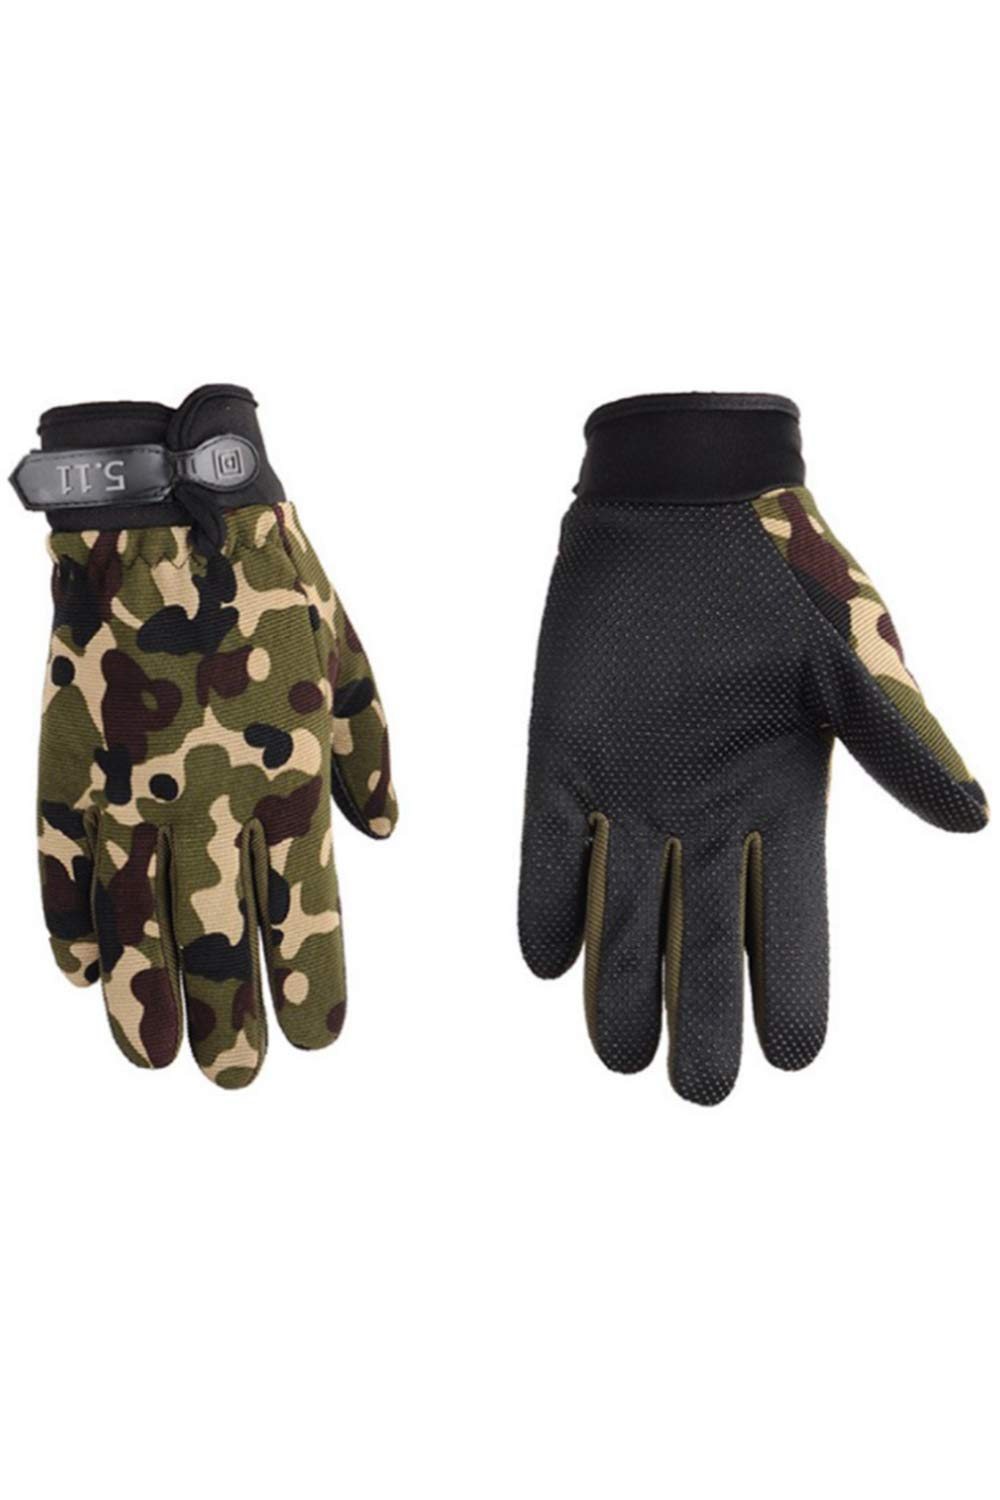 Winter Gloves Windproof Anti-Skid Driving Riding Cycling Gloves Camo One Size